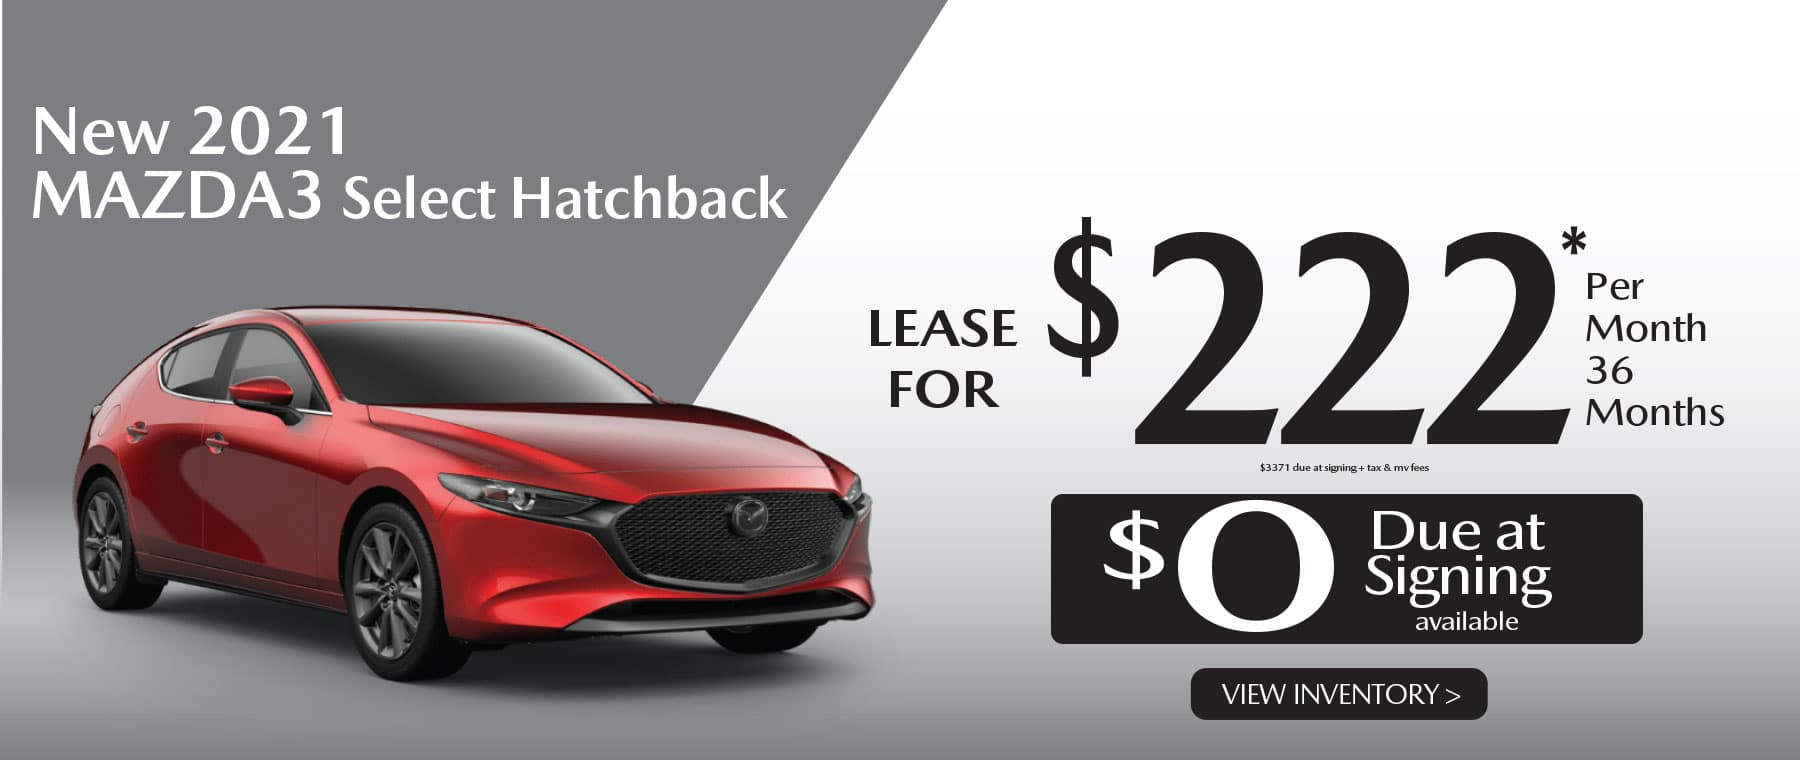 01u MAZDA3 hatch hi New Lease Special Offer Garden City Mazda NY